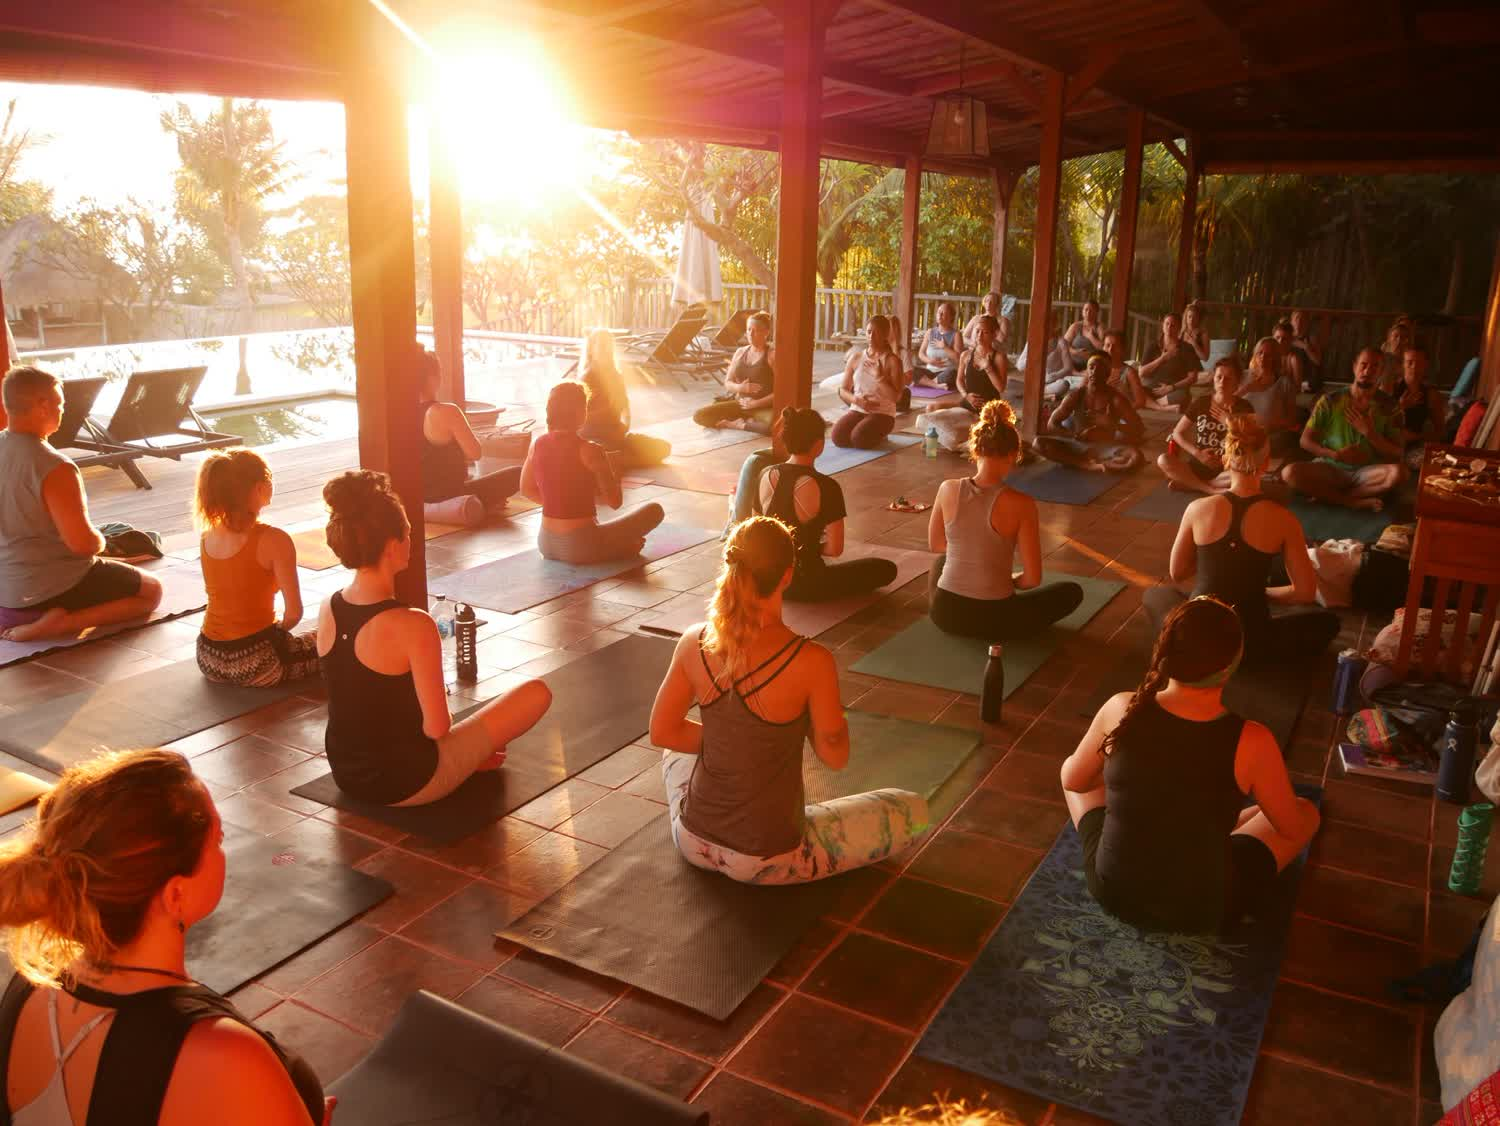 200 HR Yoga Teacher Training Sacred Waters - November 27 - December 21, 2019~ Immerse yourself in the freedom of yoga on the island of Bali ~